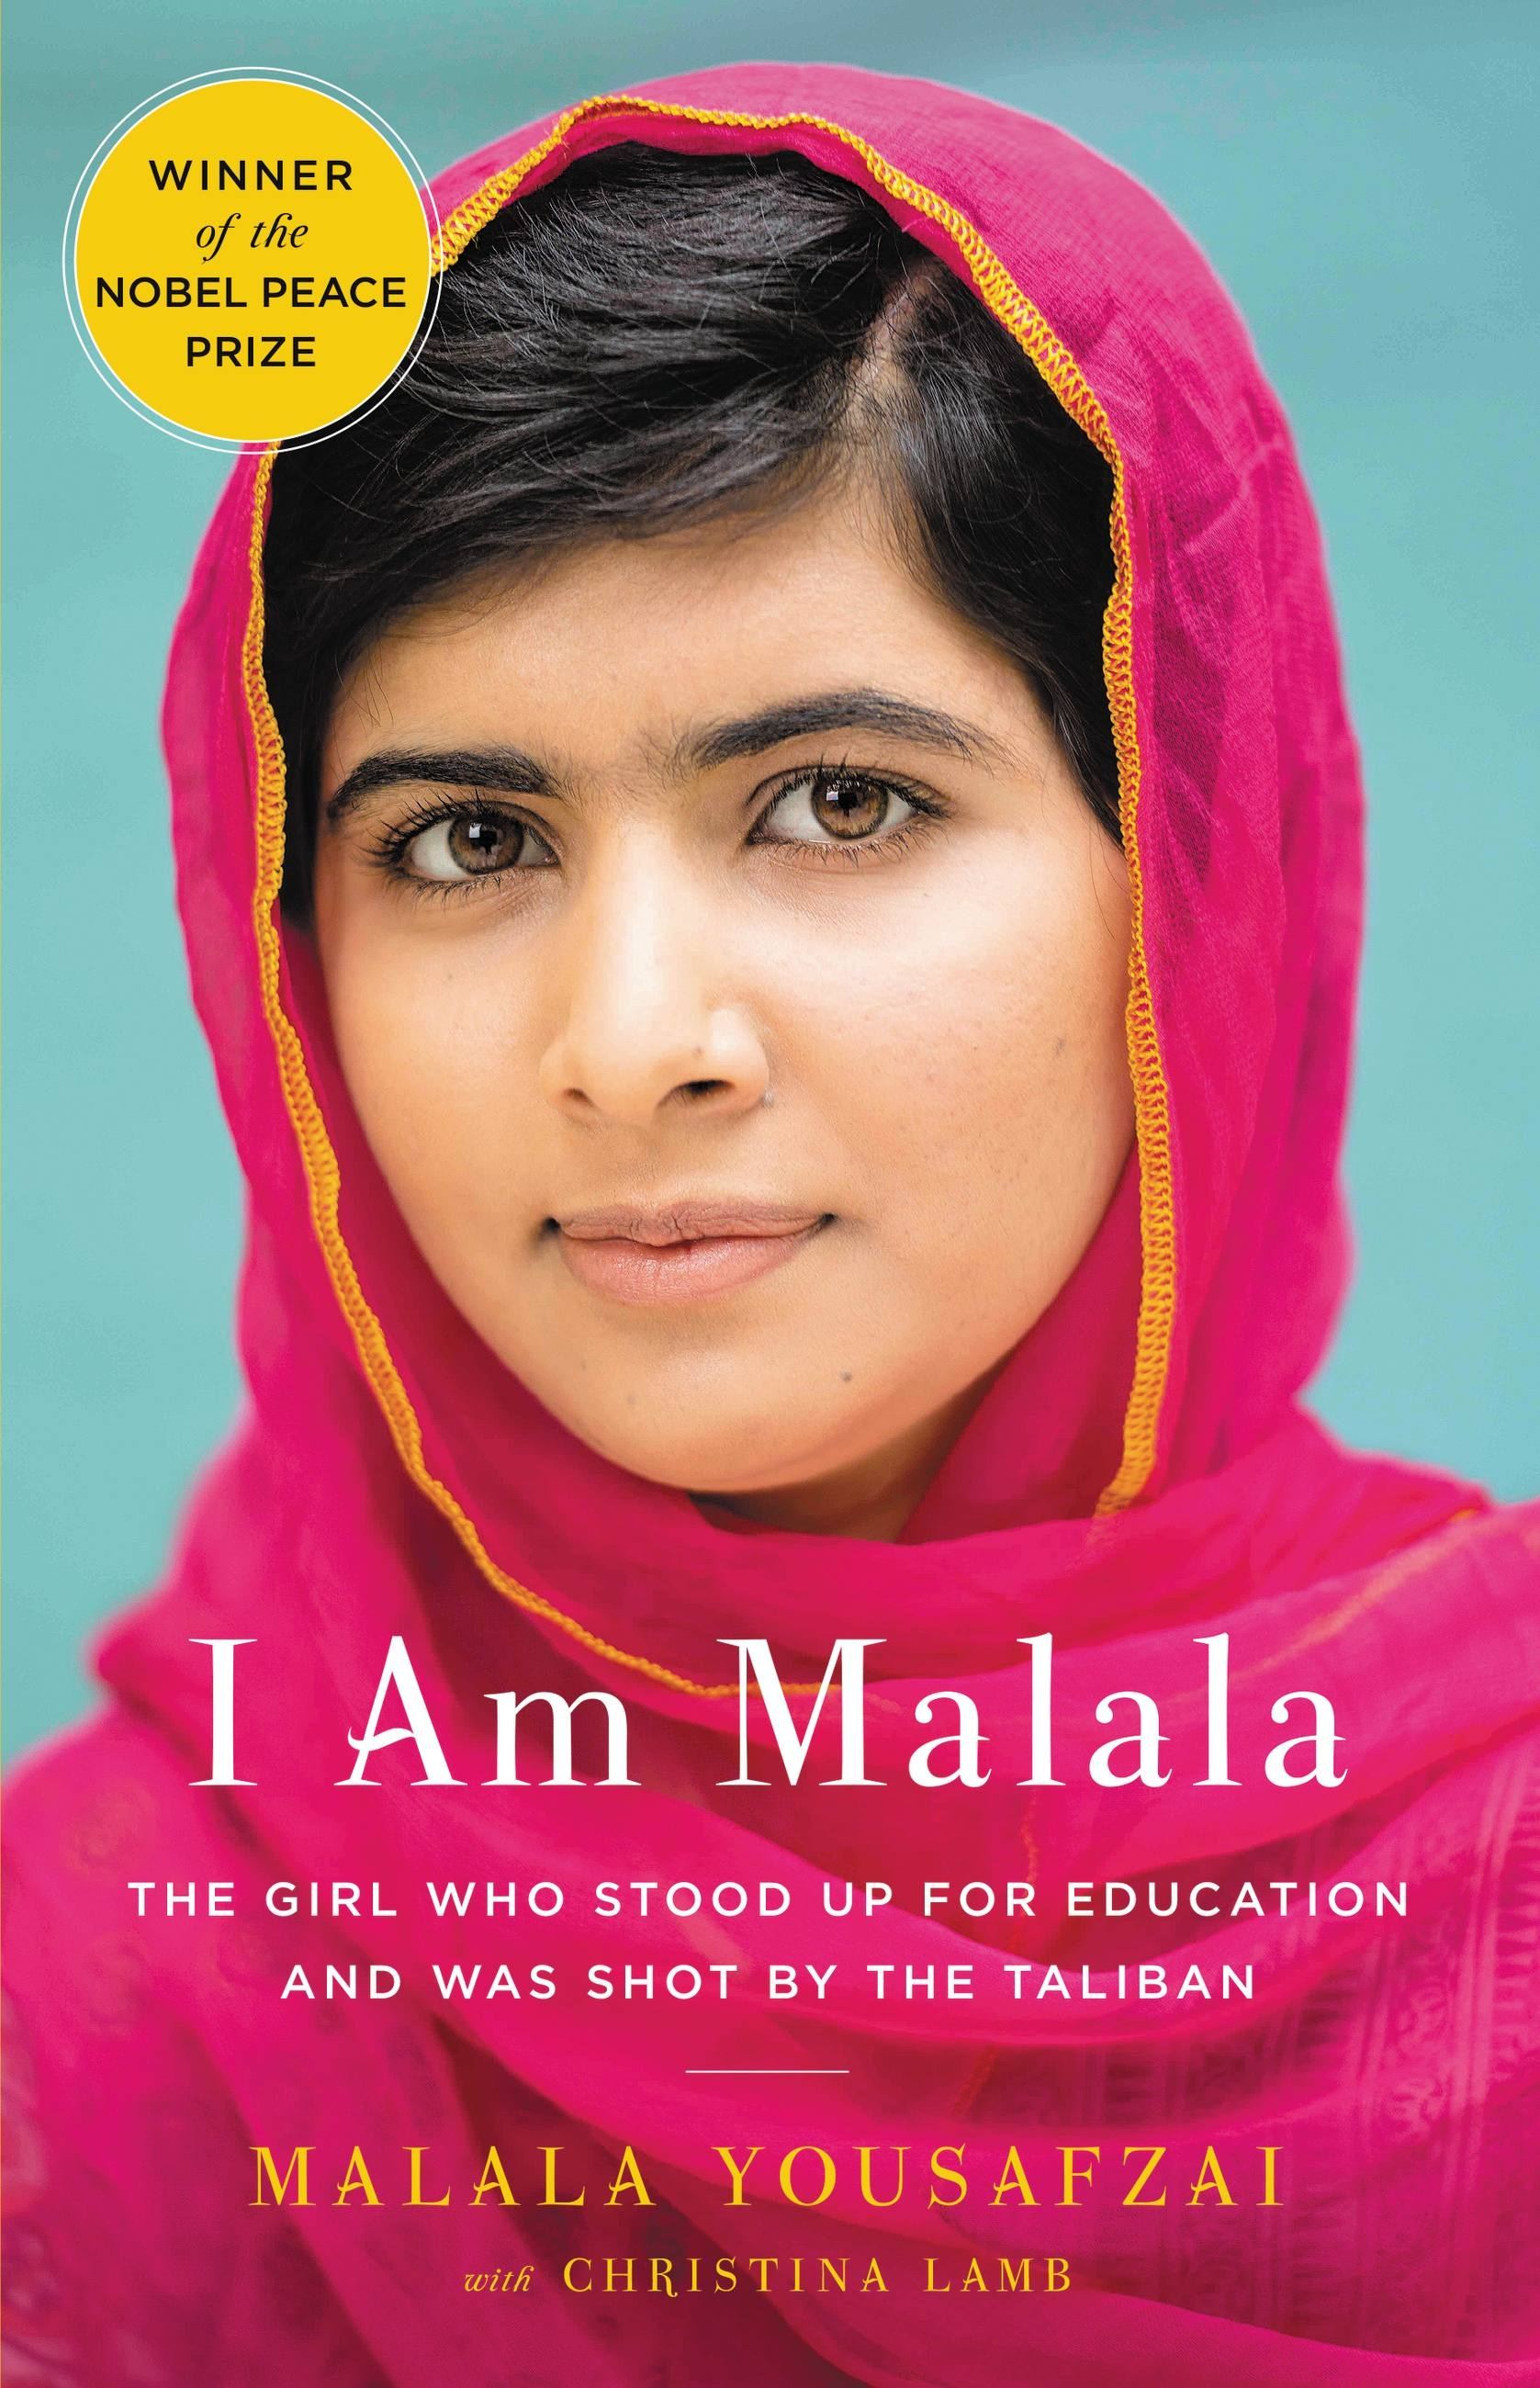 2014 Nobel Peace Prize winner. Amazing story of one girl's dream of spreading equal education for all.